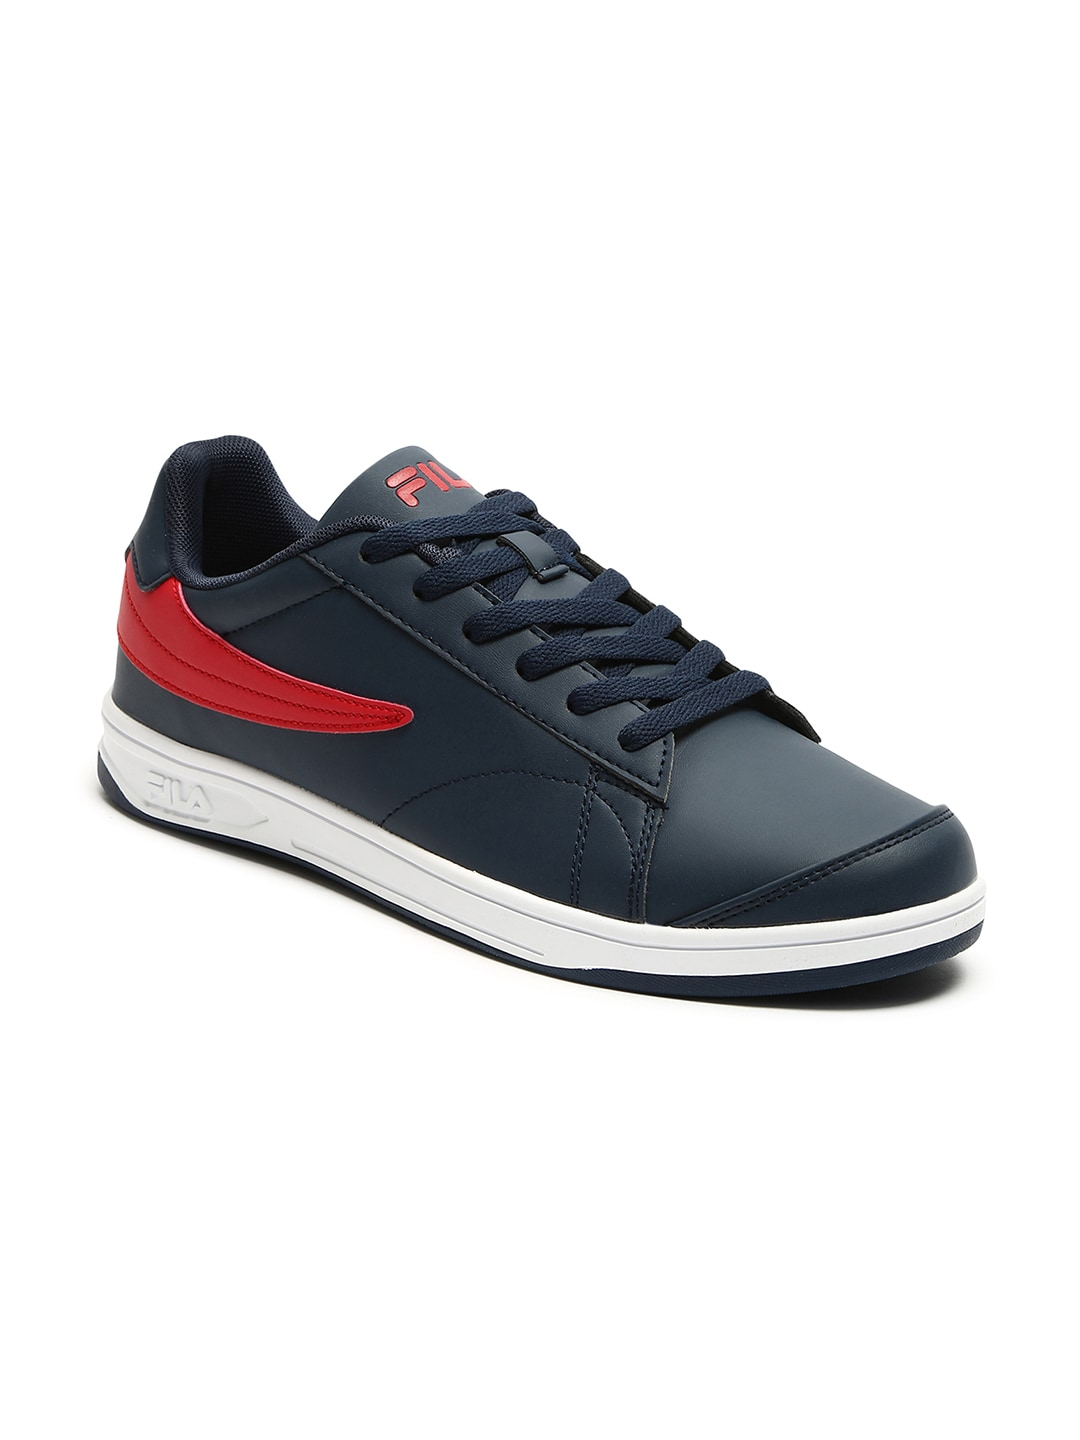 c524249499f Fila Shoes - Buy Original Fila Shoes Online in India